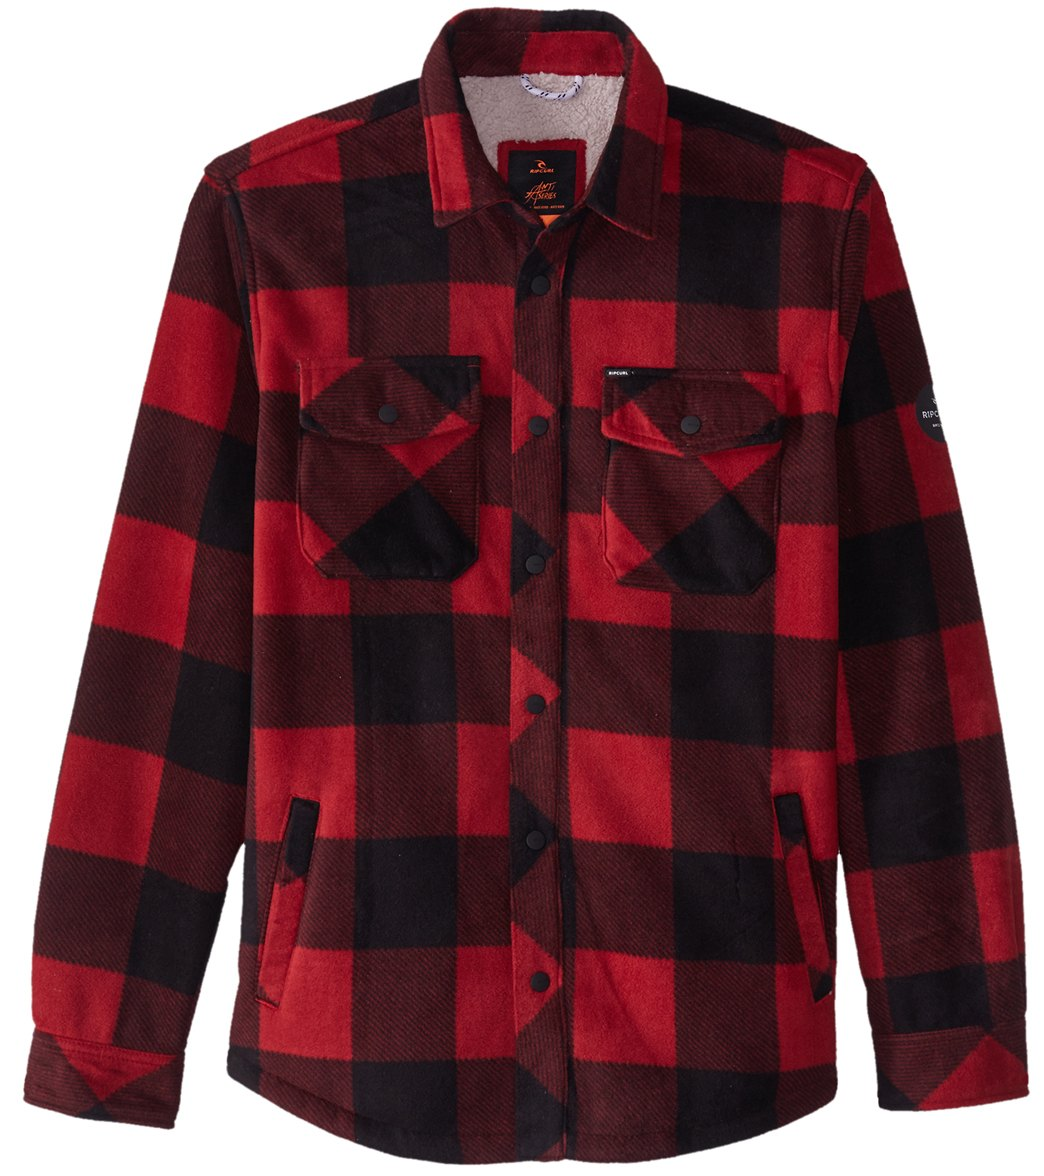 30063843d521 Rip Curl Men s El Cap Flannel Jacket at SwimOutlet.com - Free Shipping